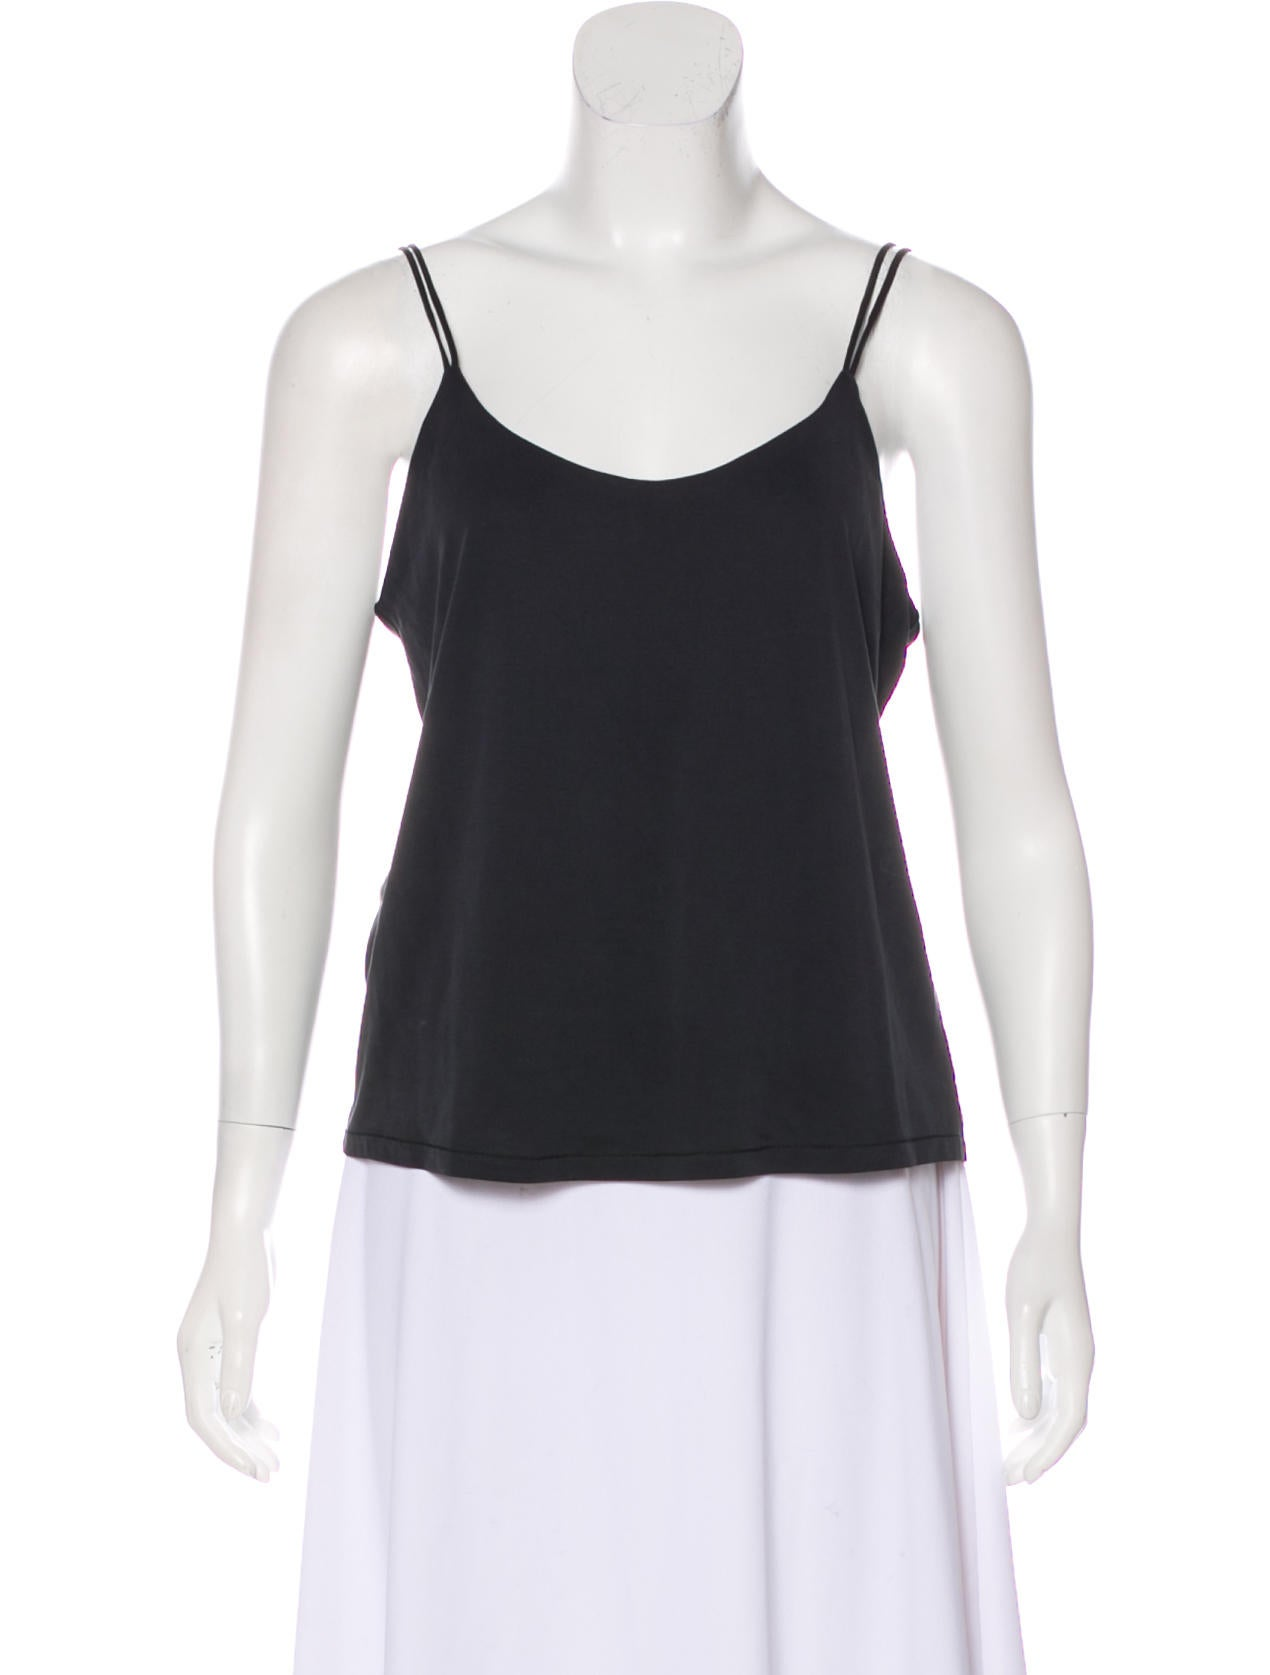 Bella Luxx Charcoal Grey Sleeveless Top Clothing W3320042 The